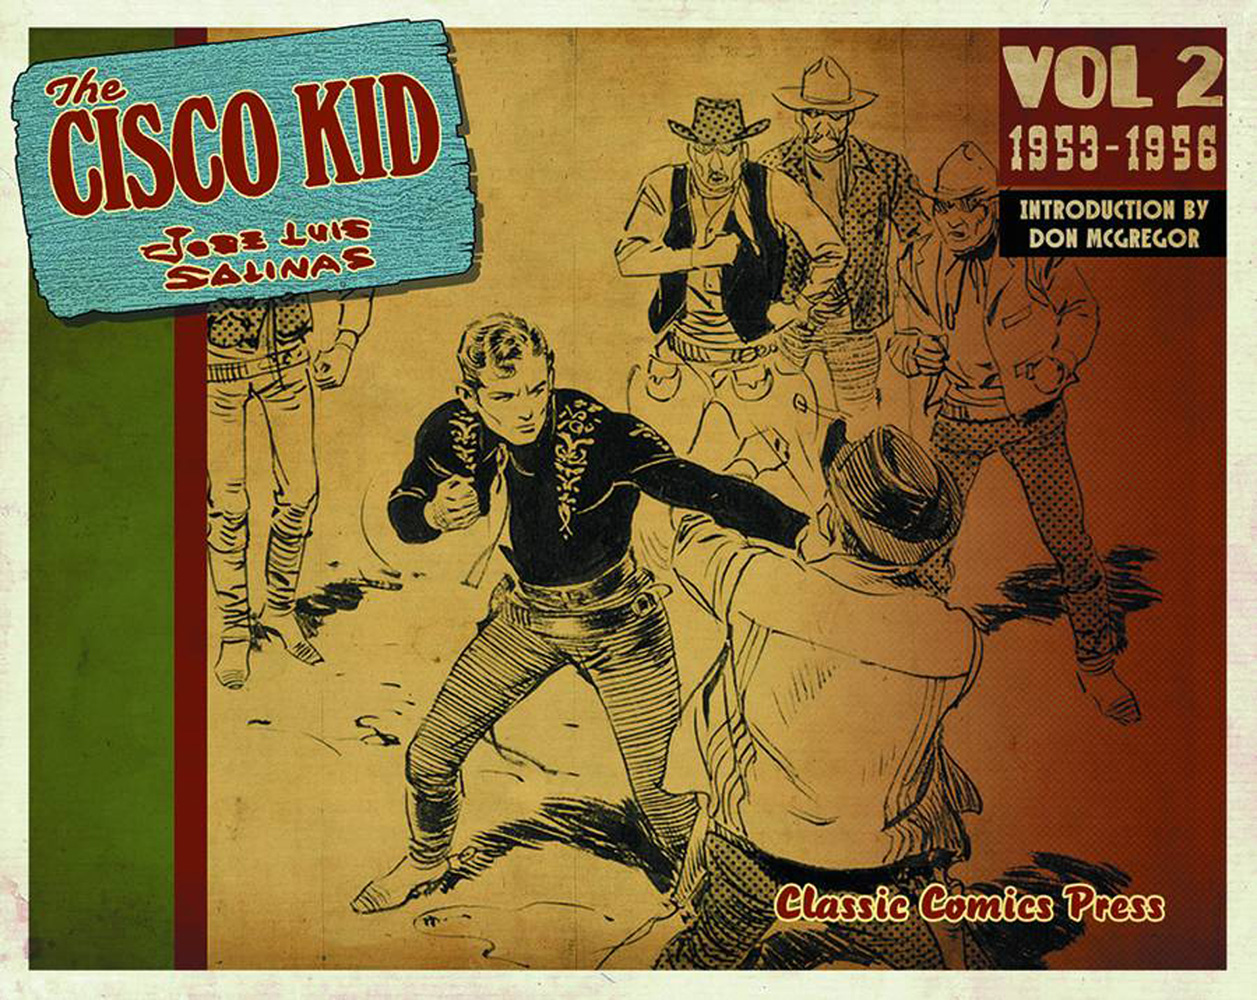 The Cisco Kid Volume 2: February 1953-March 1955